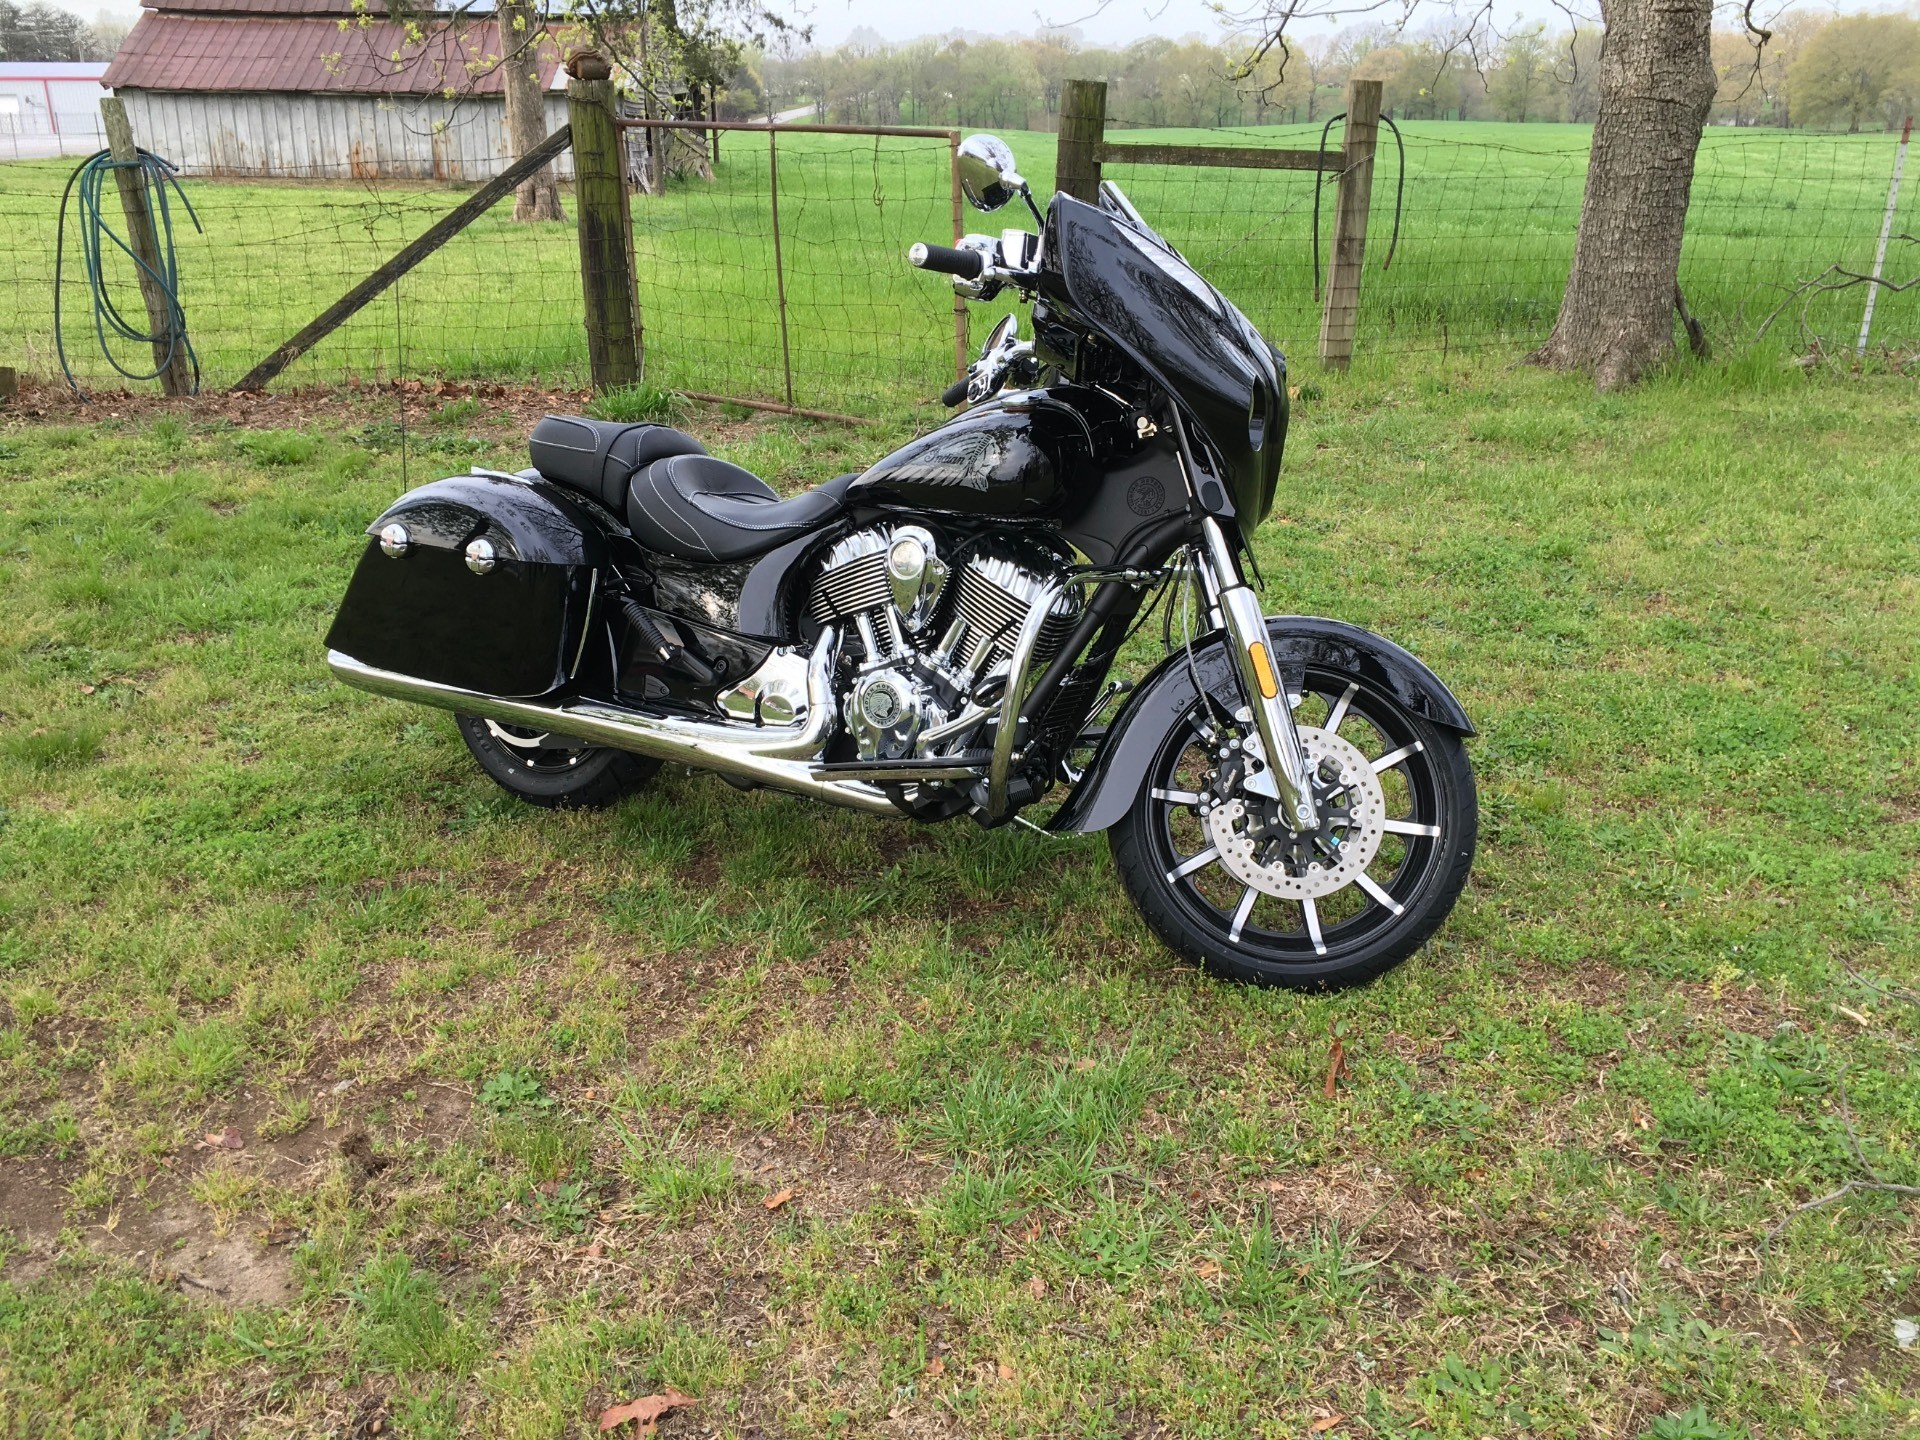 2017 Indian Chieftain Limited 2